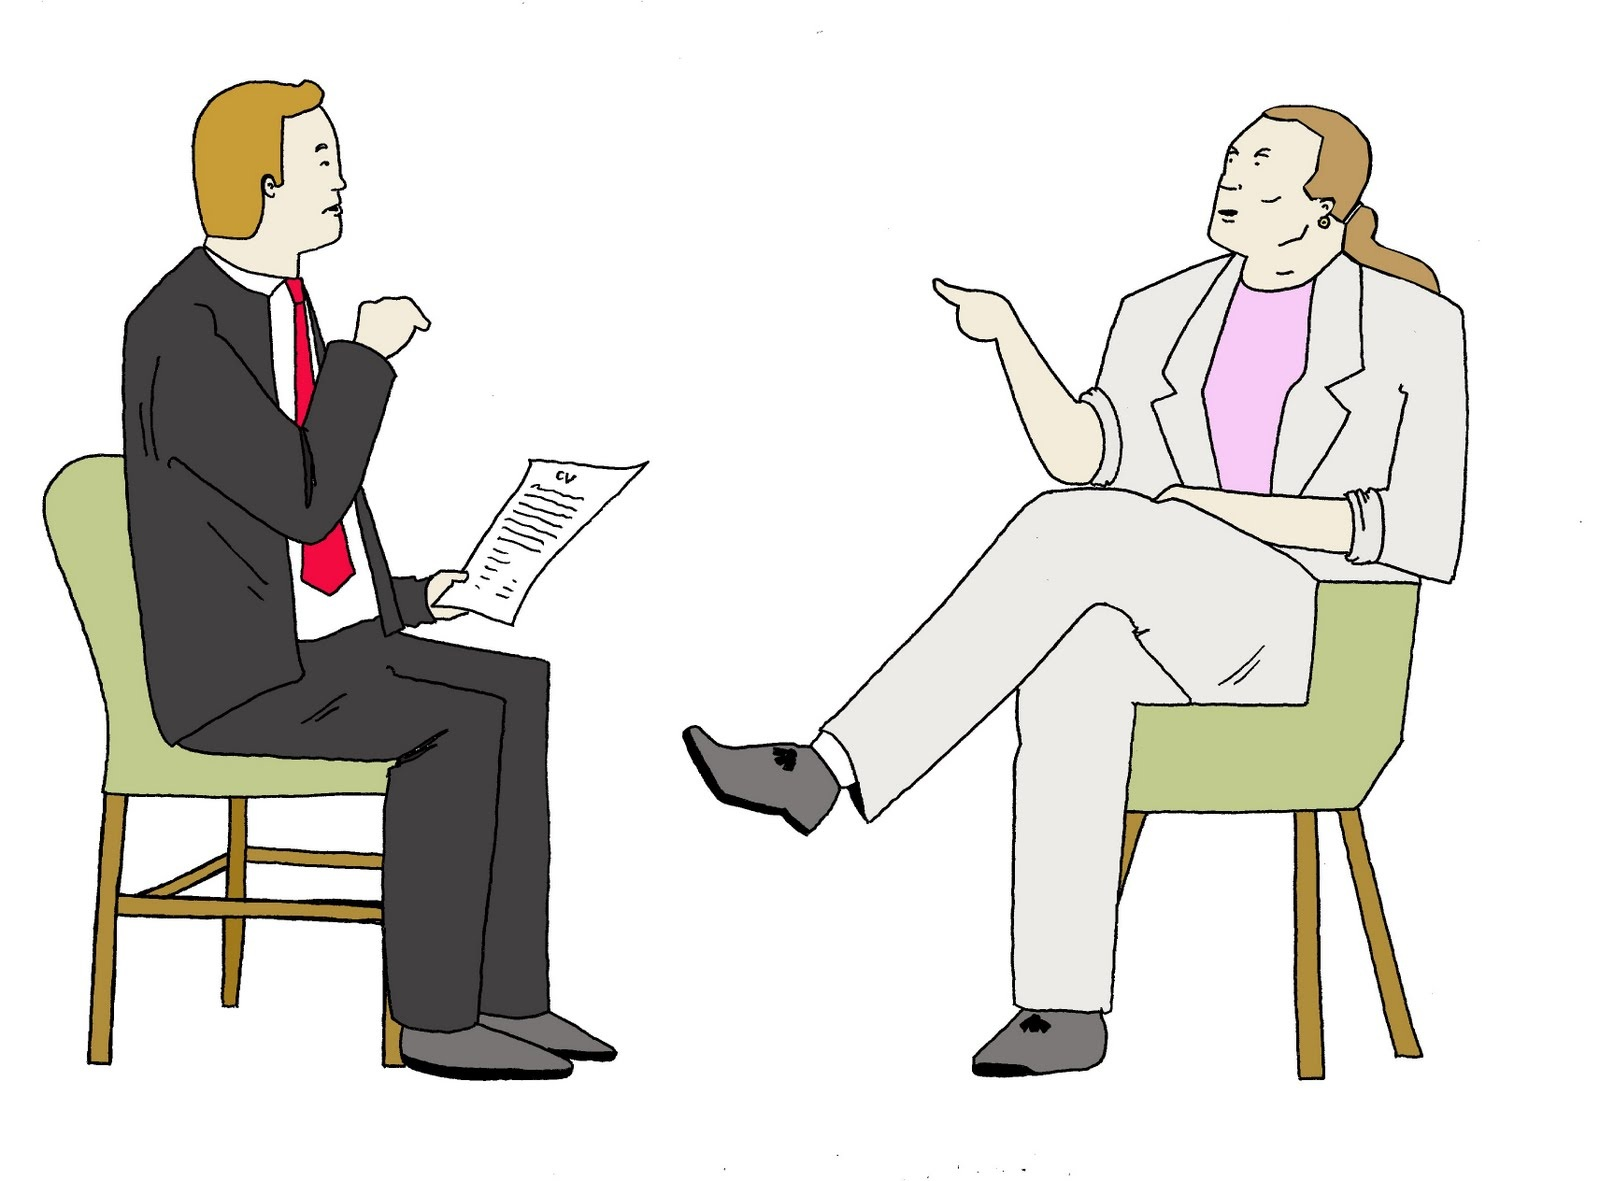 how to ace a job interview preparation communication and references Increase your confidence and land your dream job by learning how to answer hard interview questions searching online for sample questions will help you feel more prepared step 2 talk to the interviewer talk to the interviewer about your education, work experience, qualifications, and goals when.